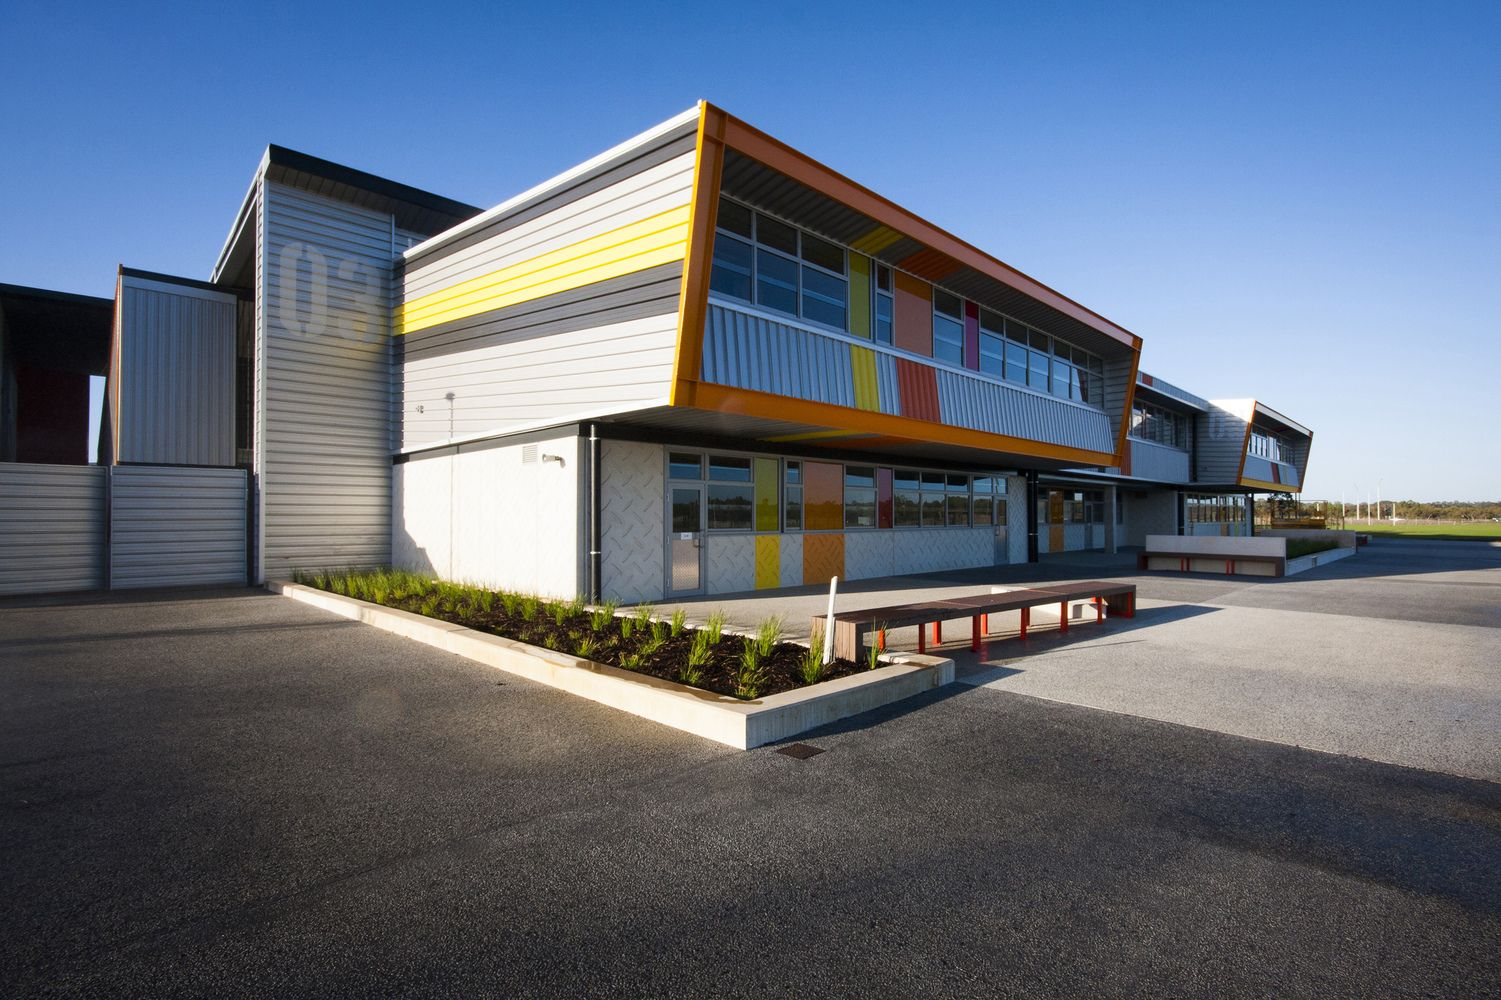 Gallery of baldivis secondary college jcy architects and urban designers 16